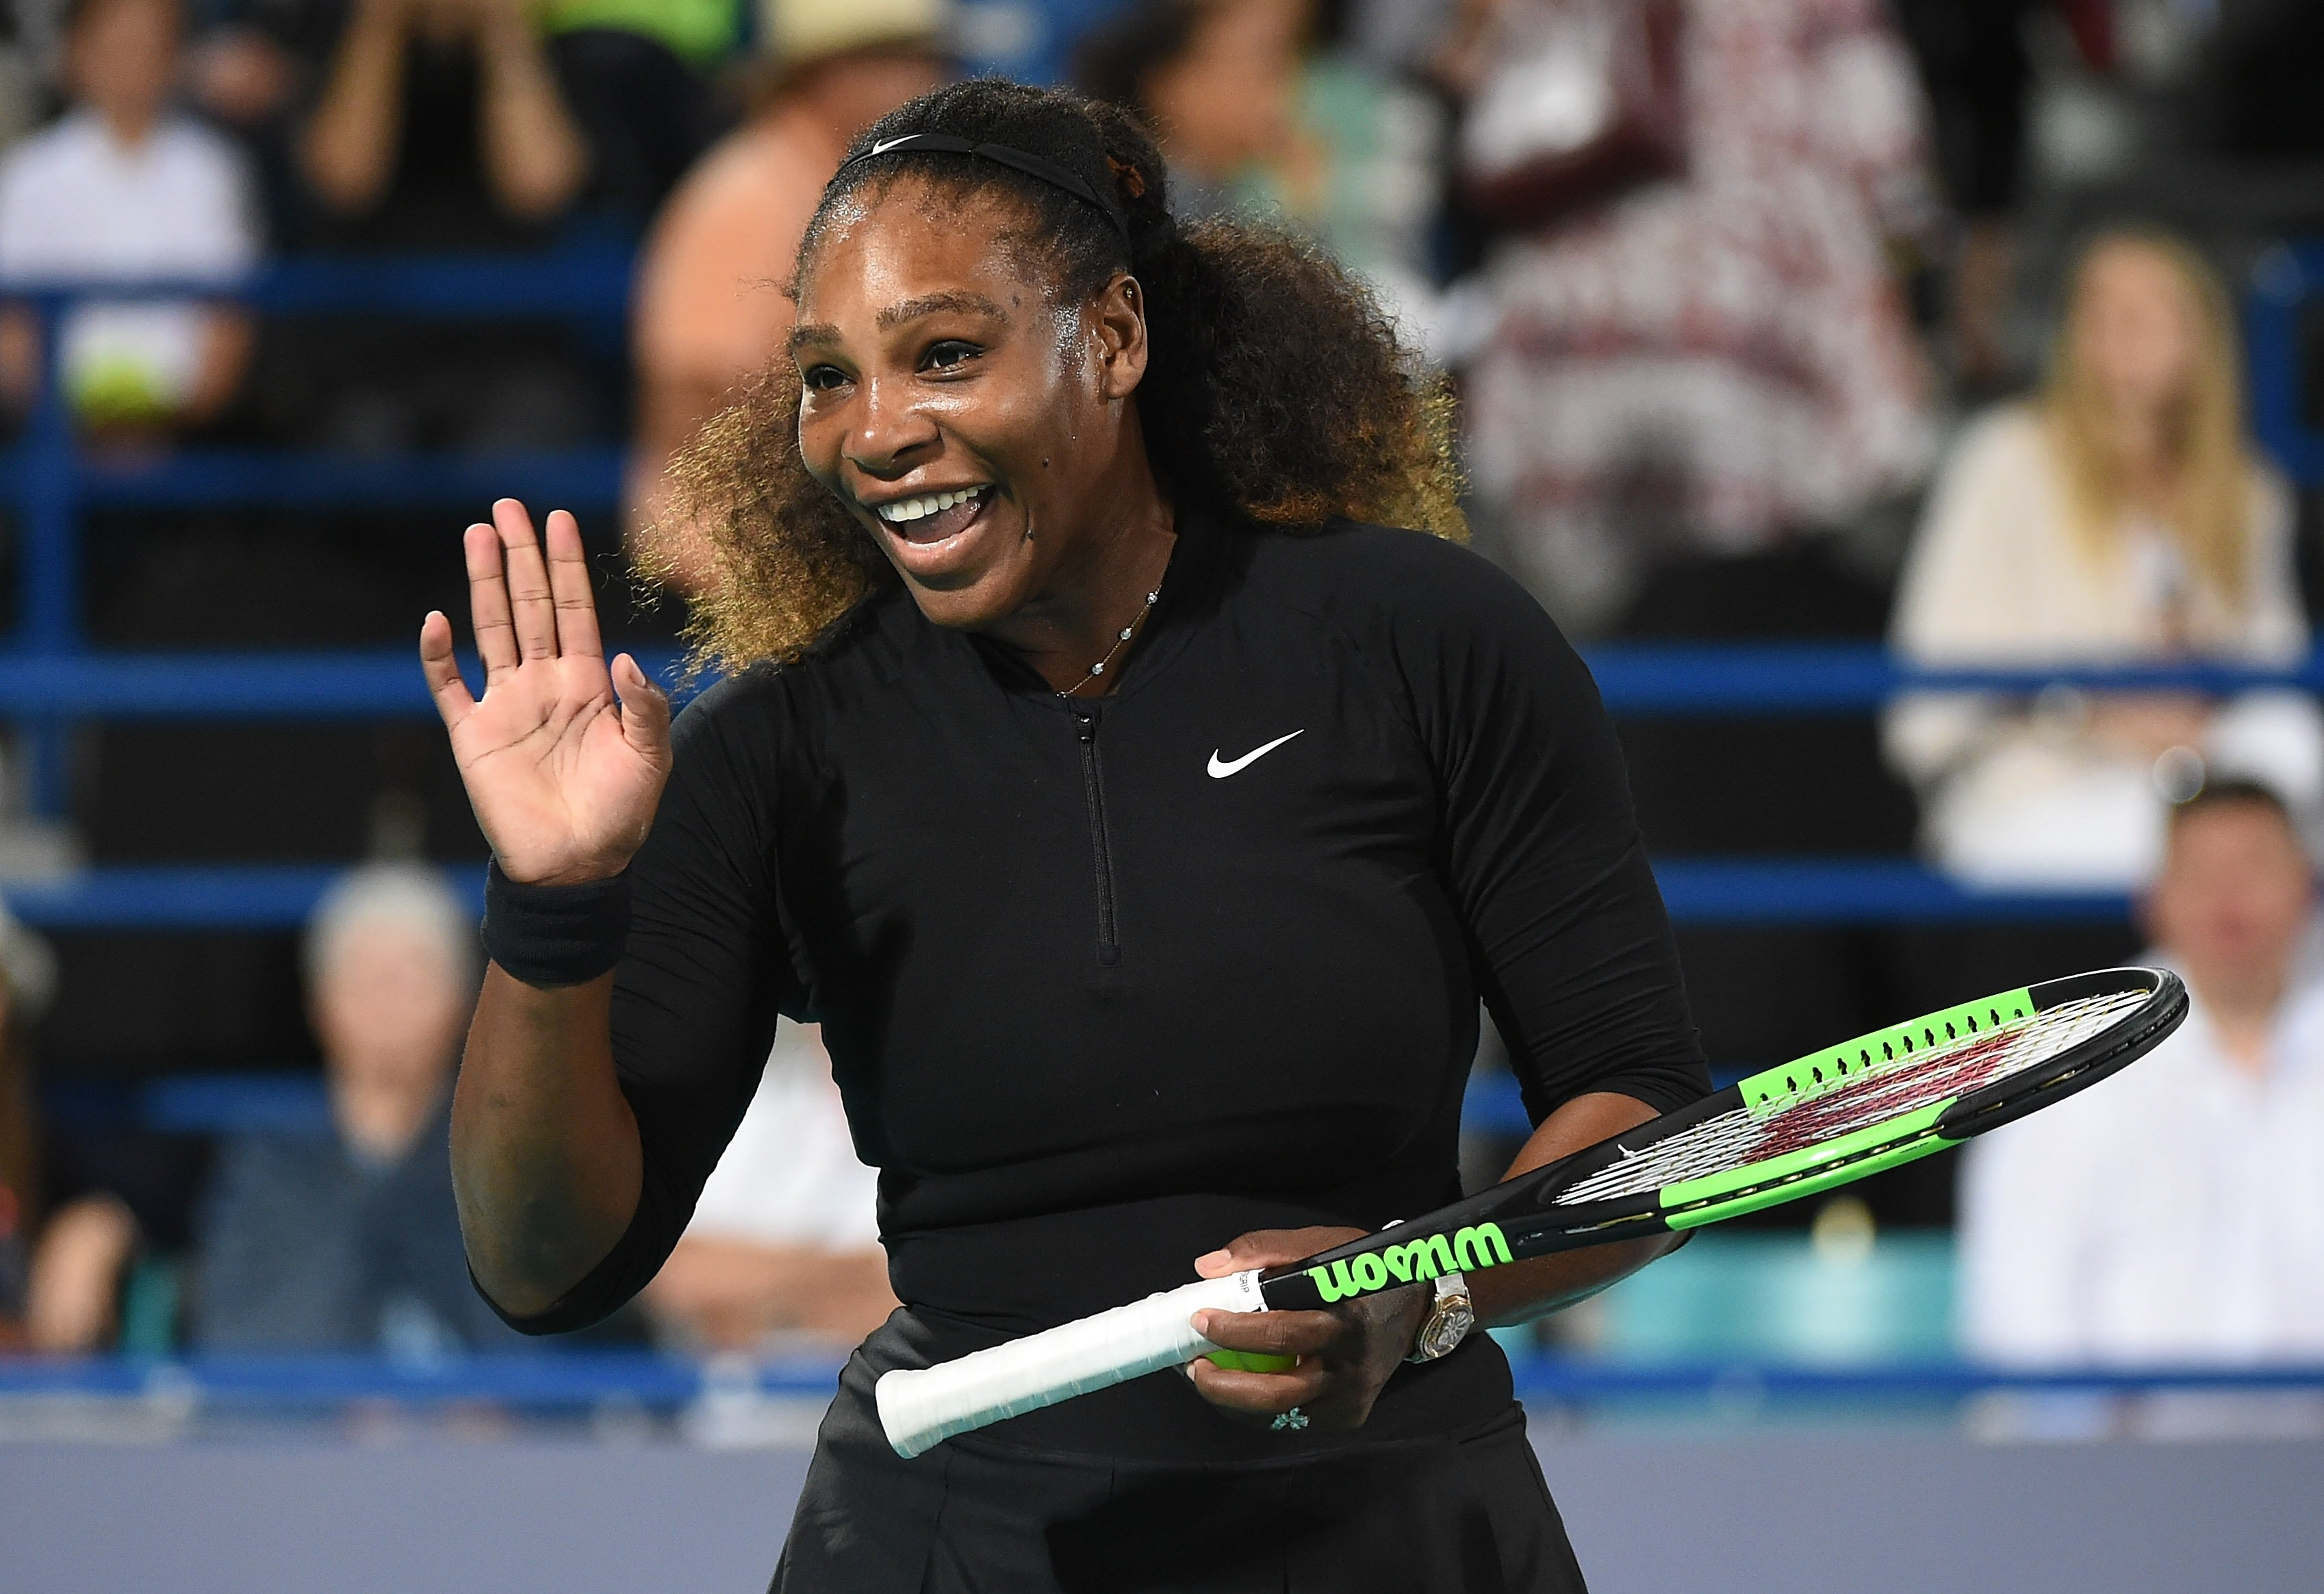 Serena Williams at the Mubadala World Tennis Championship at International Tennis Centre Zayed Sports City on December 30, 2017 in Abu Dhabi, UAE    Photo: Getty Images